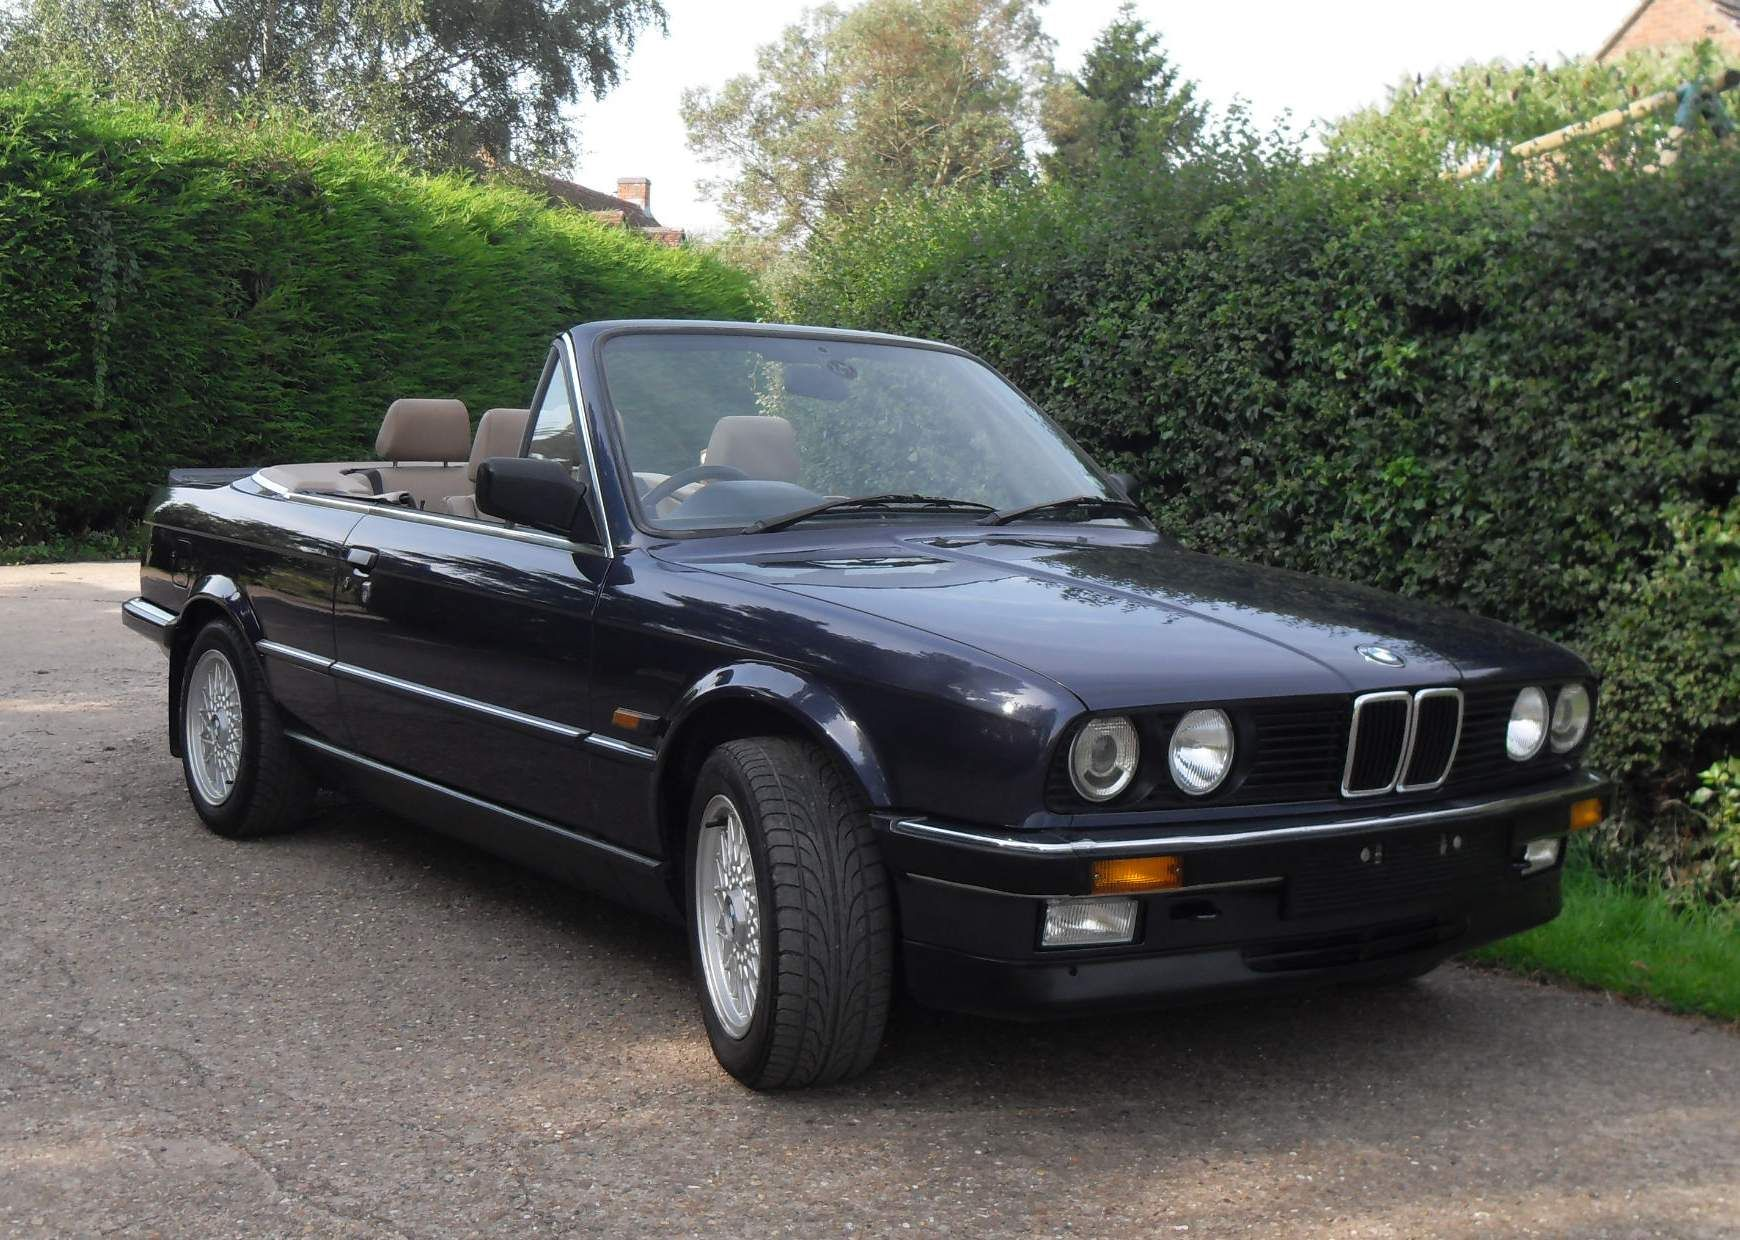 1990 bmw 325ic the cars of my life bmw e30 cabrio bmw. Black Bedroom Furniture Sets. Home Design Ideas